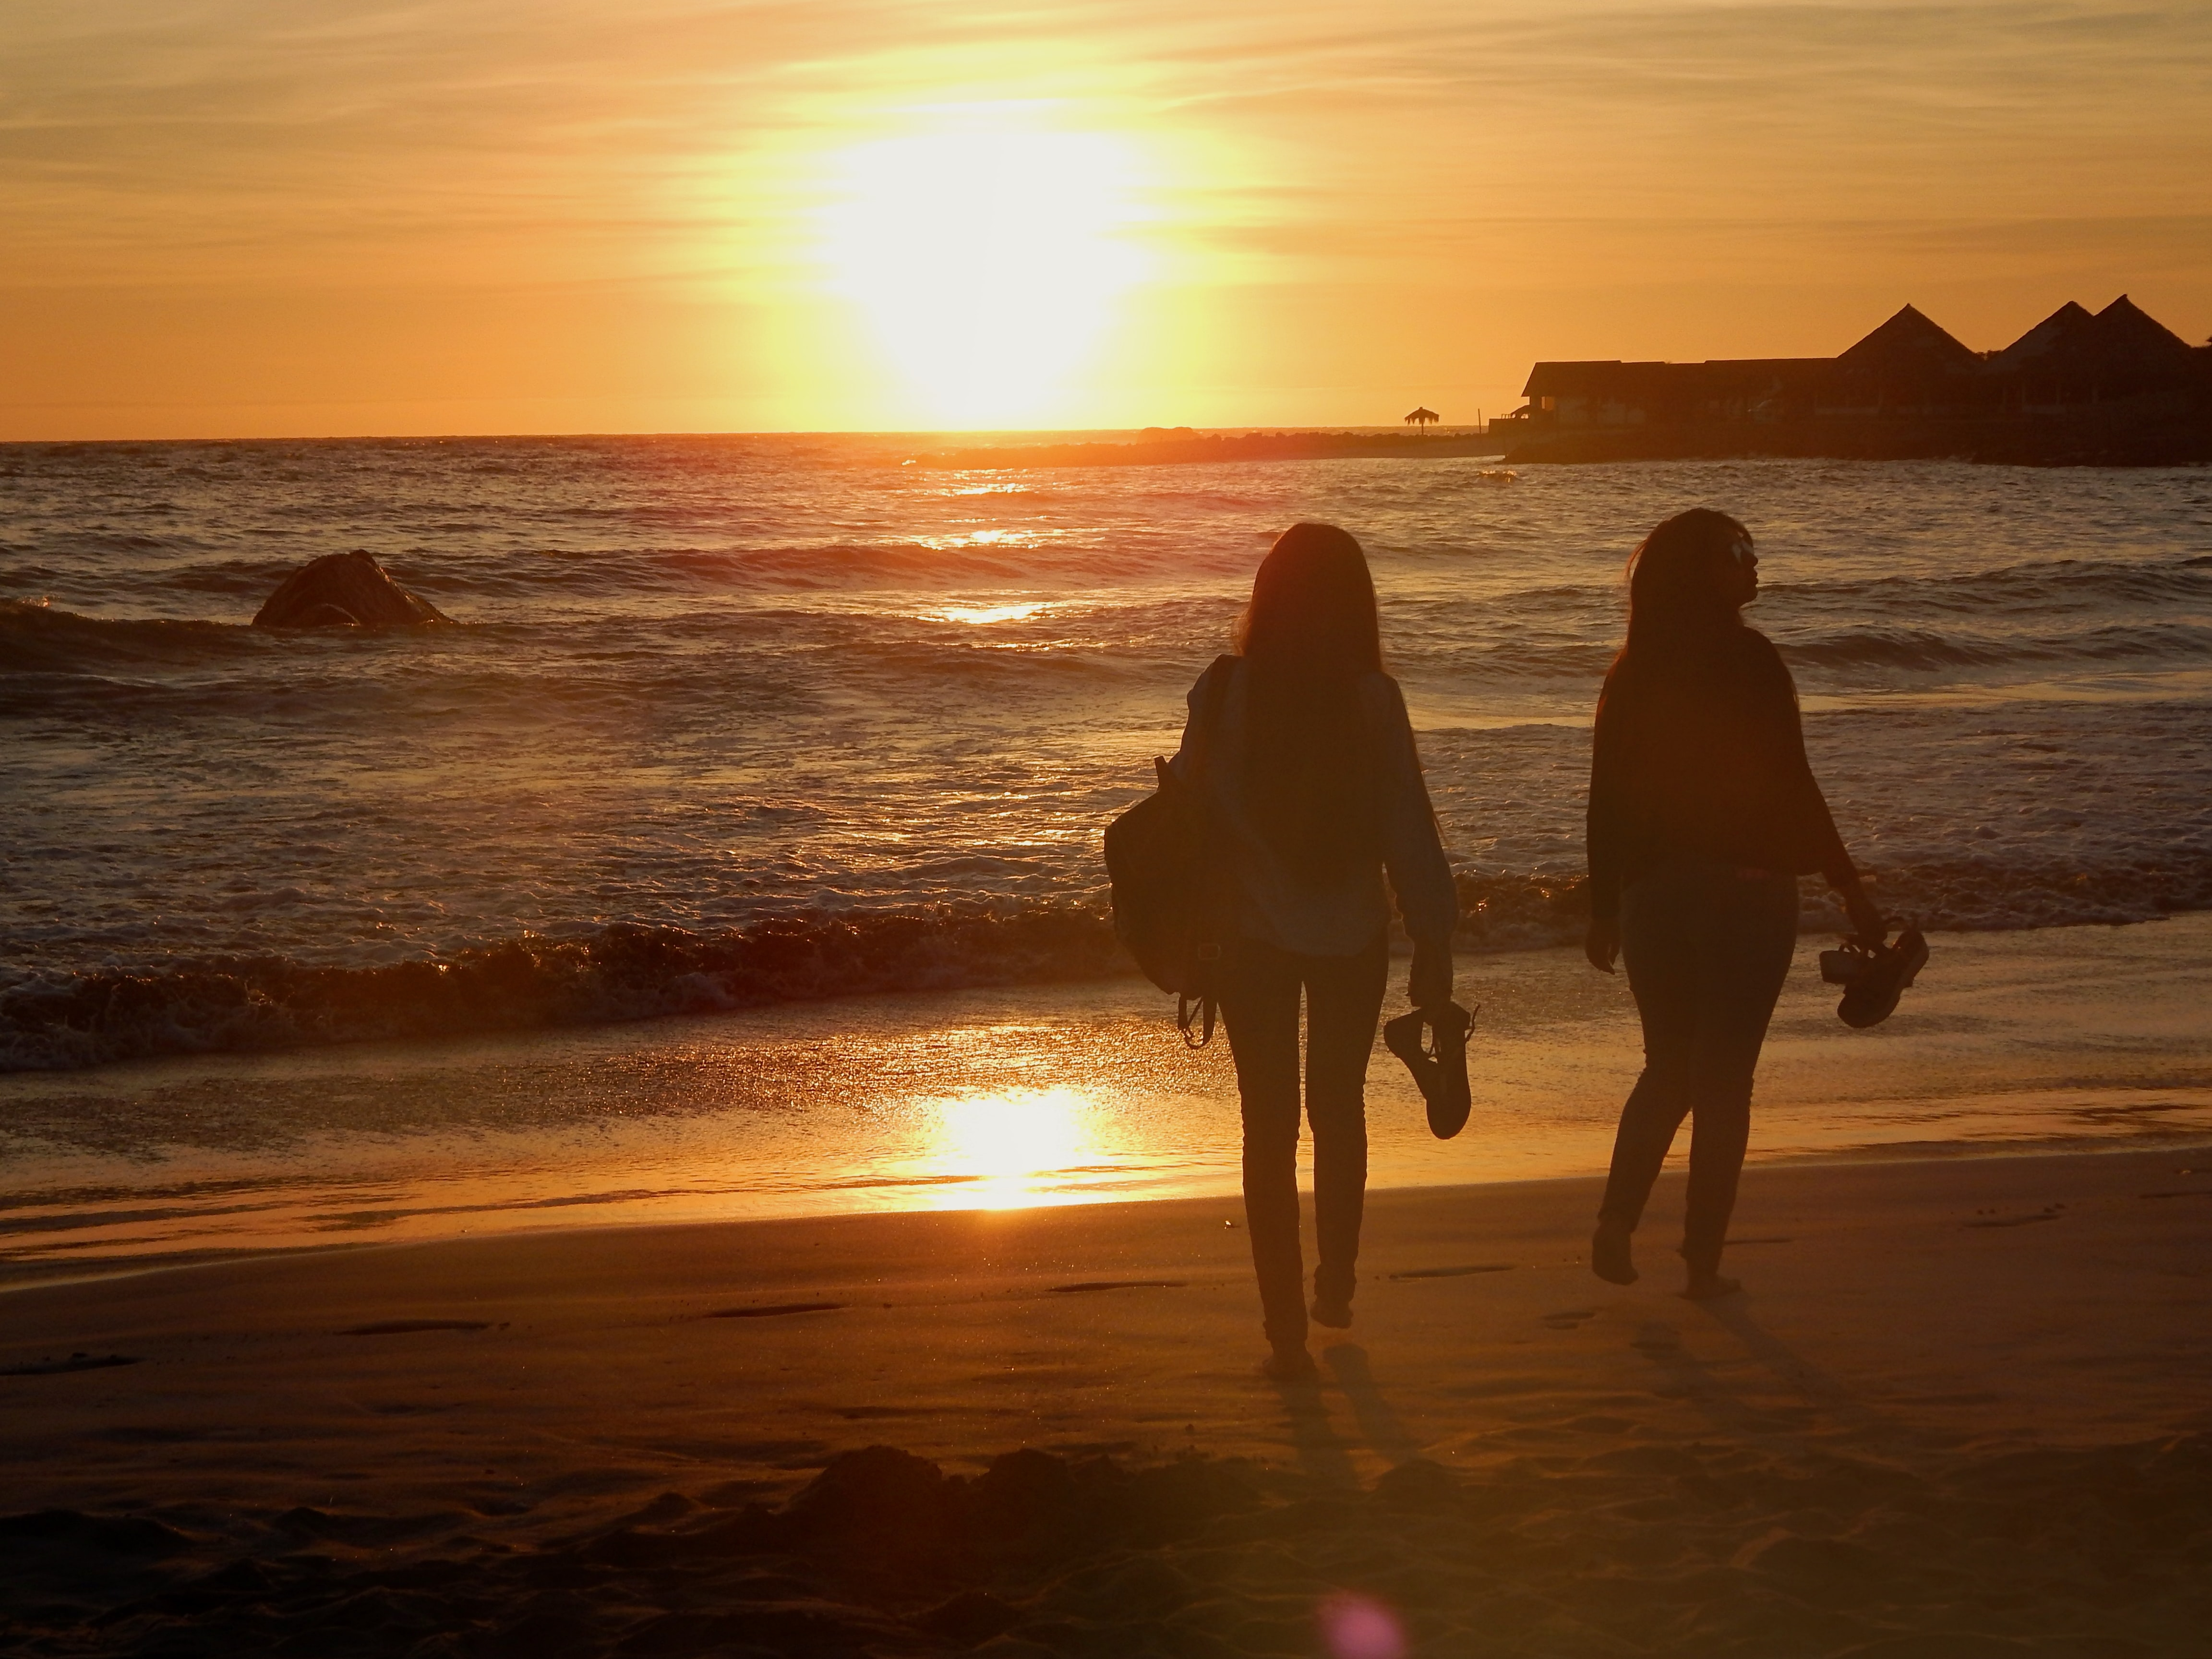 Silhouettes of people walking along the beach at sunset. Photo courtesy of Jael Rodriguez on Unsplash.